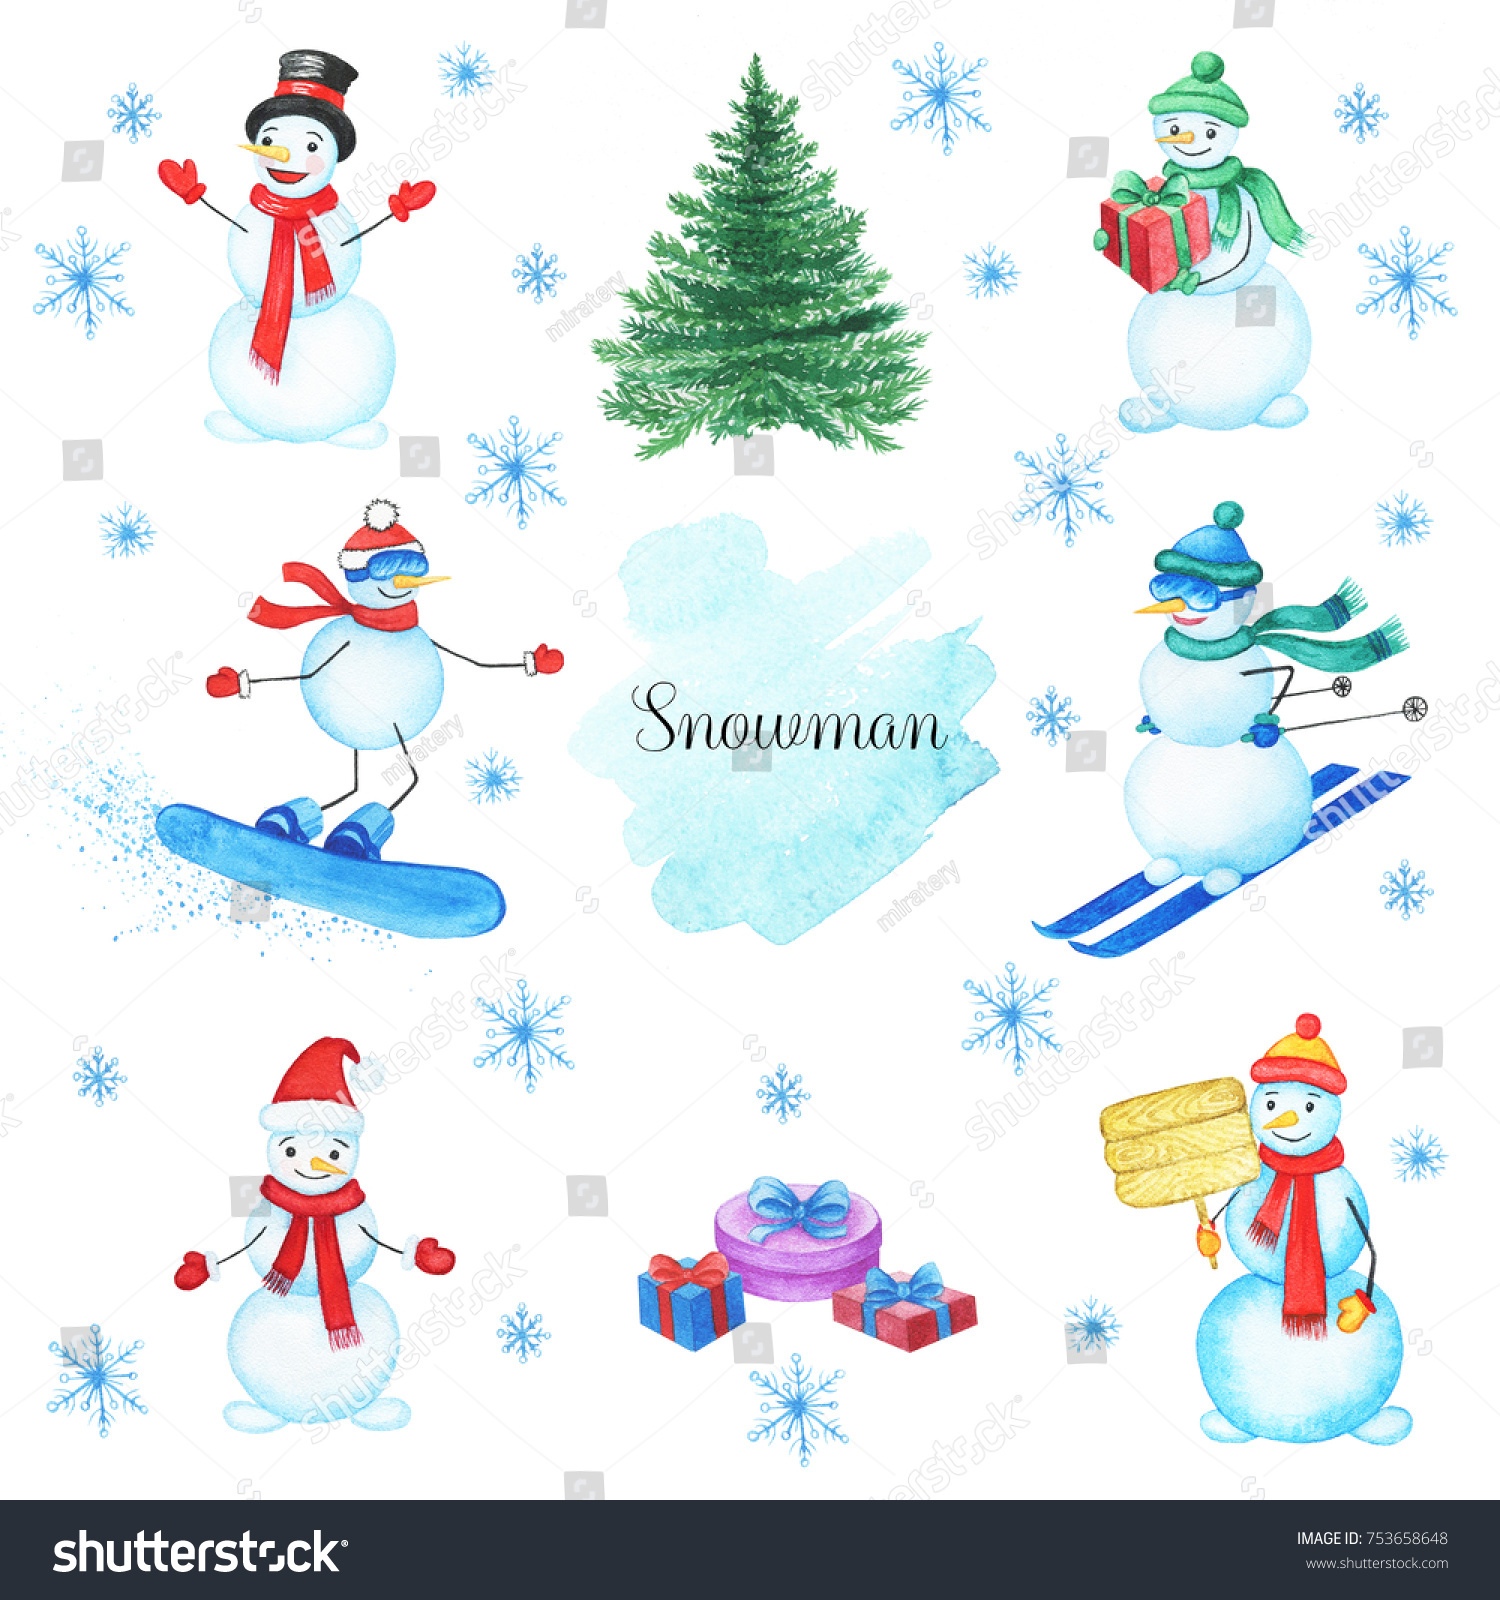 hight resolution of watercolor snowmans set isolated on white background this christmas set with handpainted clipart snowman